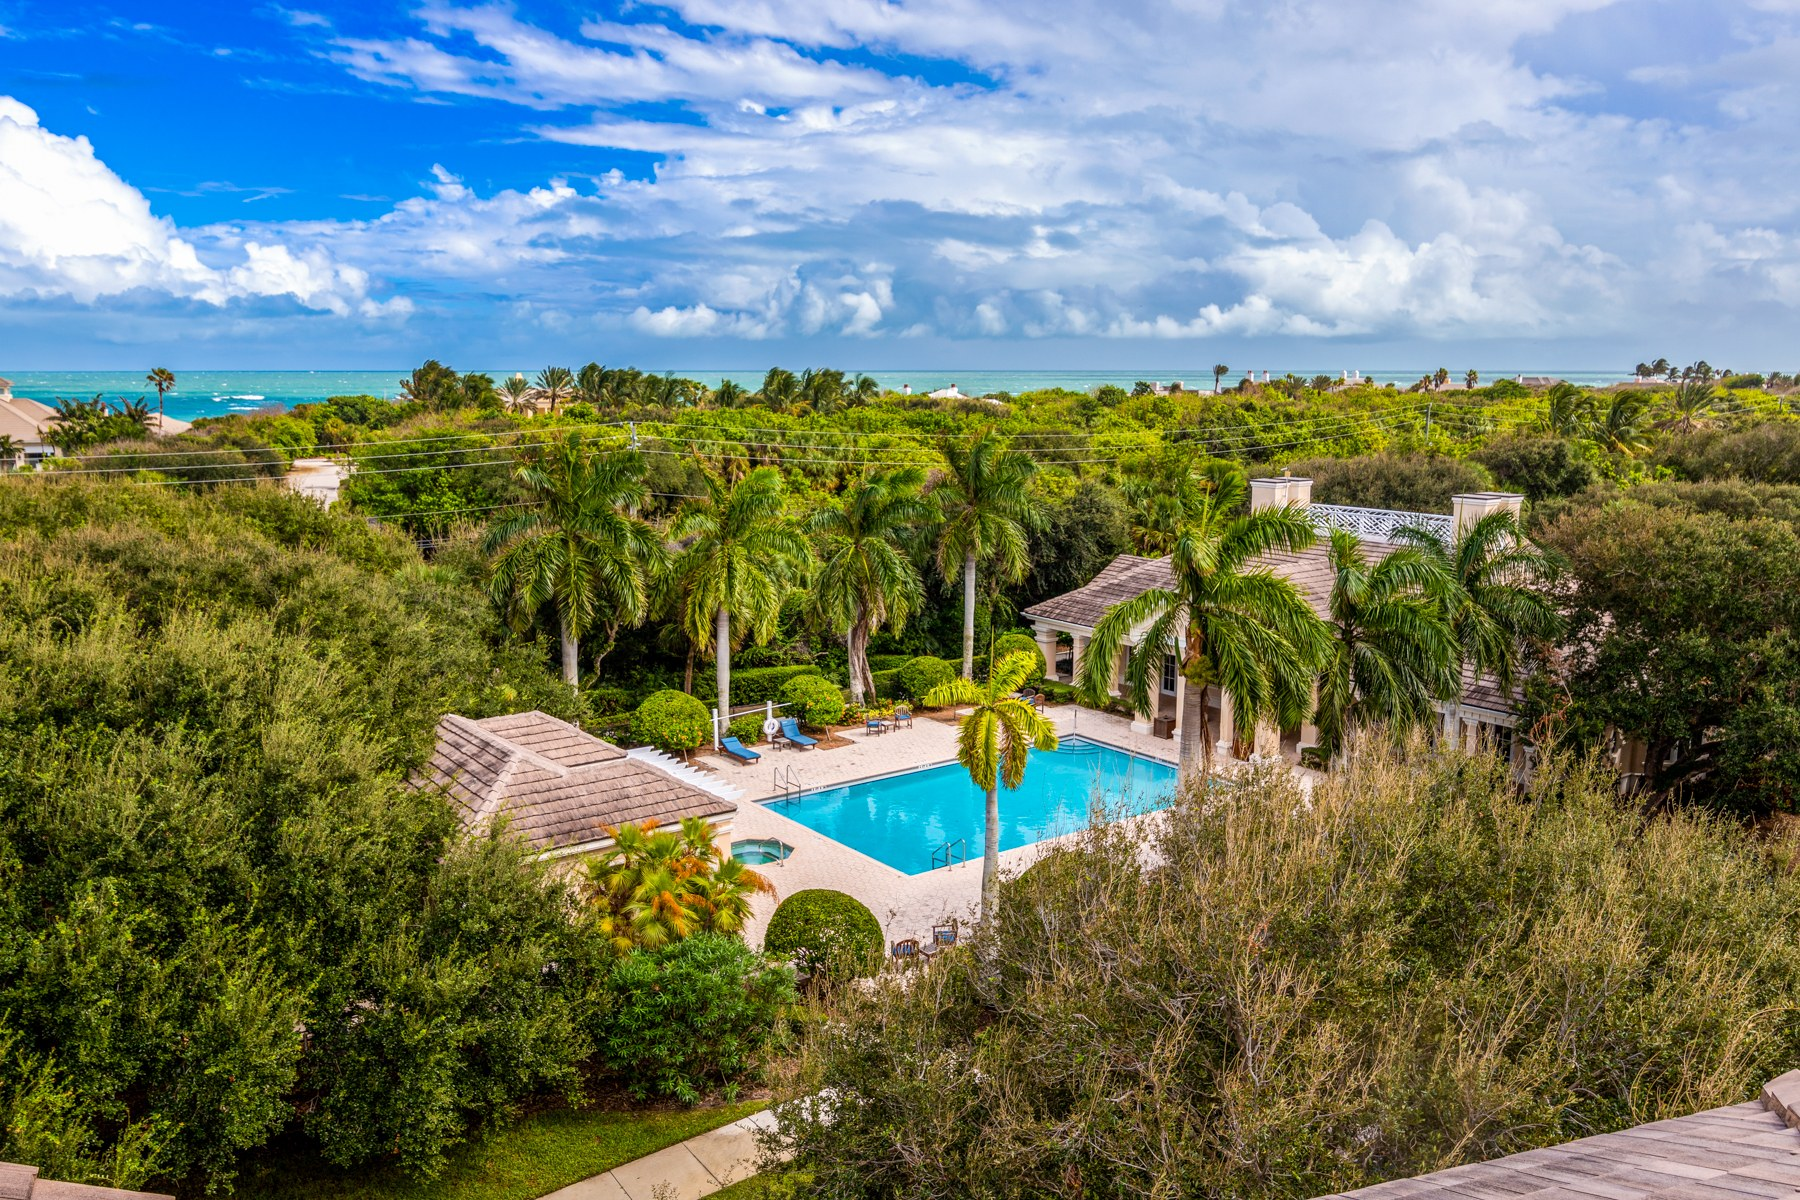 Property voor Verkoop op 900 River Club Drive & Highway A1 A, Vero Beach, FL 900 River Club Drive & Highway A1 A Vero Beach, Florida 32963 Verenigde Staten